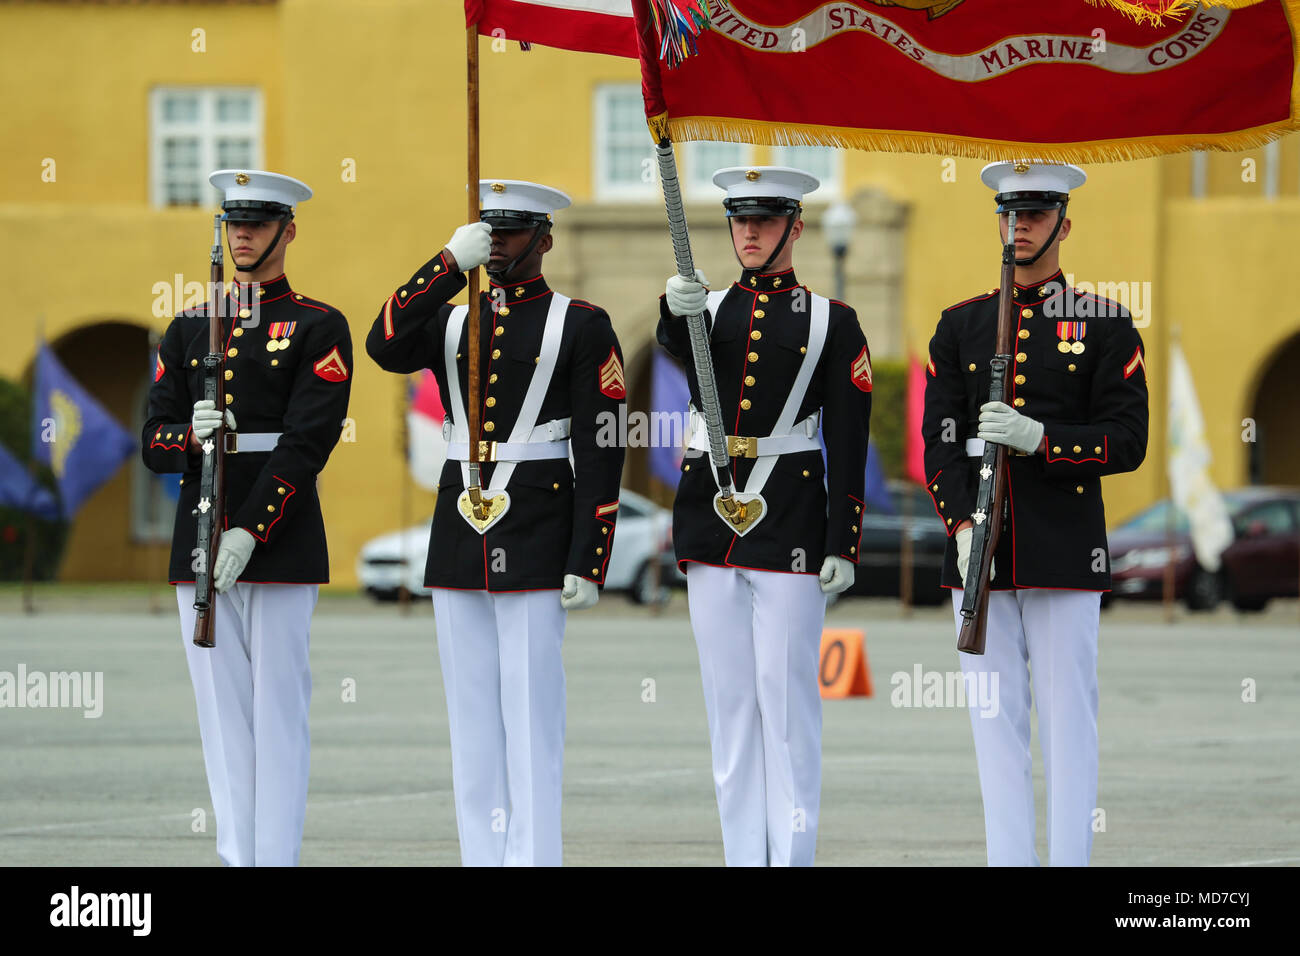 The U.S. Marine Corps Color Guard presents the National and U.S. Marine Corps Battle Colors during a West Coast tour performance at Marine Corps Recruit Depot (MCRD), San Diego, Ca., March 17, 2018. The audince members of the ceremony included many current recruits as well as drill instructors of MCRD San Diego. (Official Marine Corps photo by Cpl. Damon Mclean/Released) Stock Photo